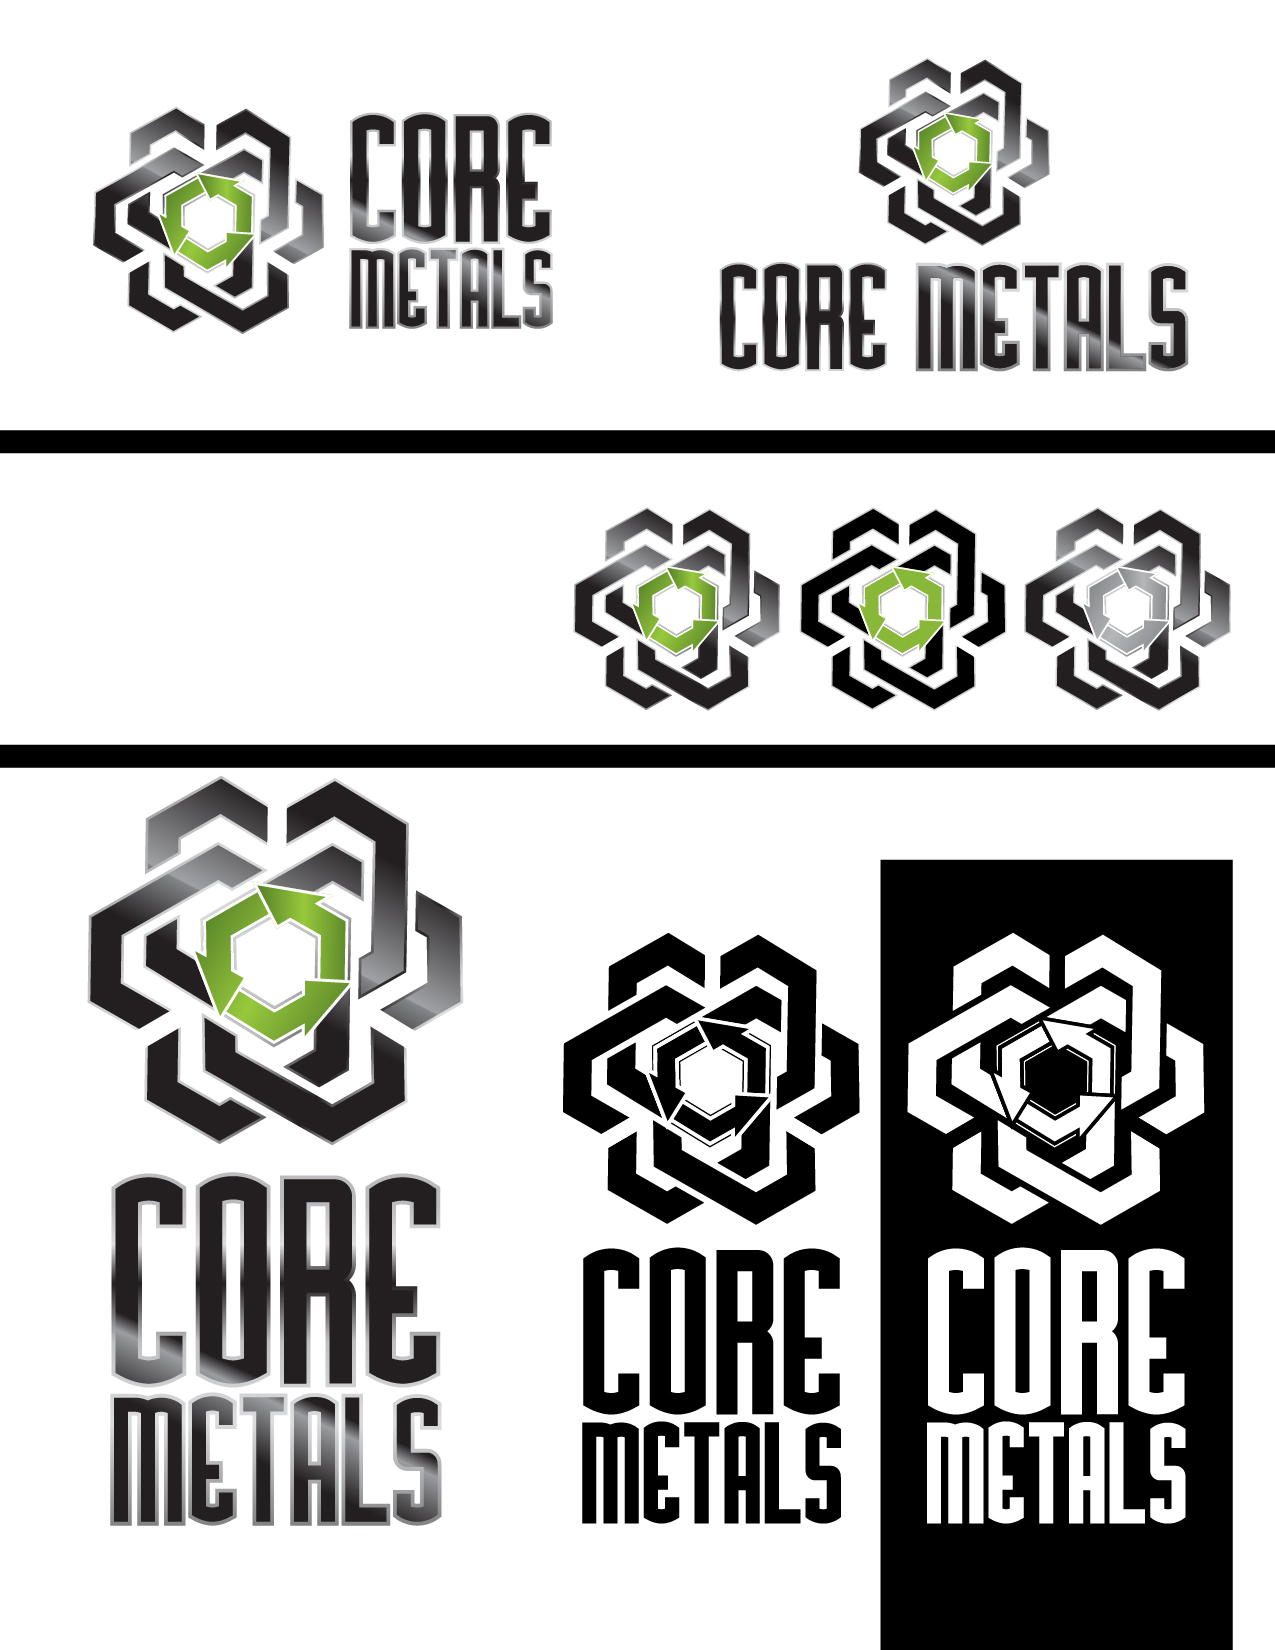 Logo Design by Jesus P Quiroga - Entry No. 26 in the Logo Design Contest New Logo Design for Core Metals Inc.